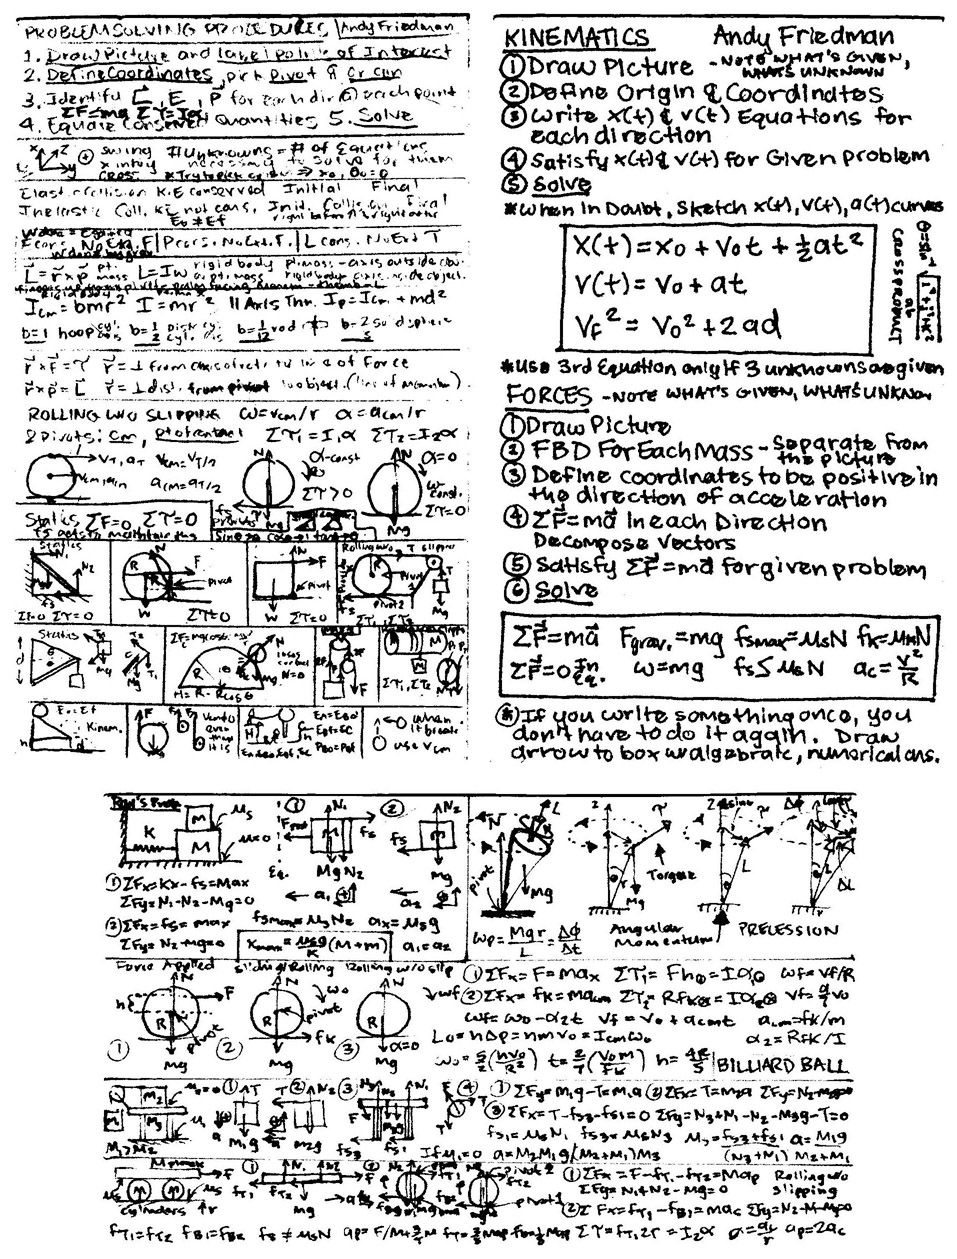 Physics 1 Sheet Part A Cover Letter Template Free Physics Learning Math